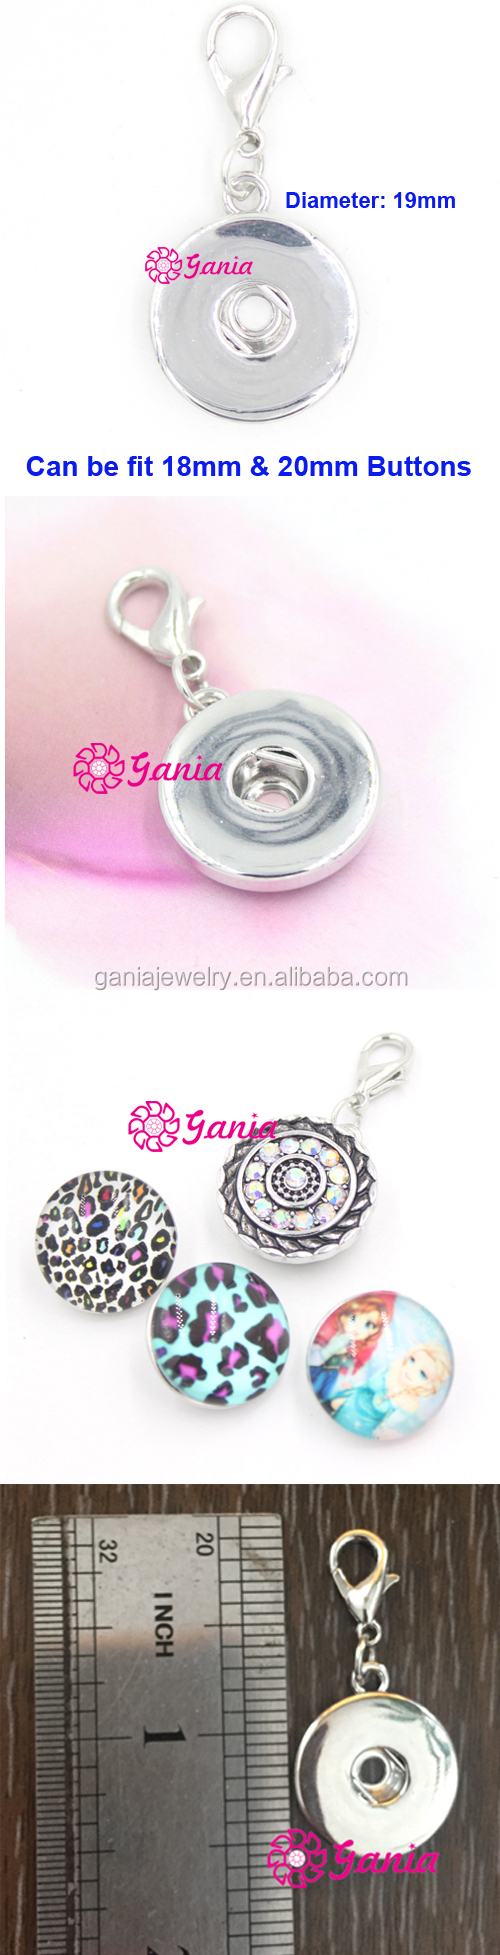 Fashion Interchangeable Pendant Charm 18mm Button Snap Pendant Jewelry for Necklace Bracelet Earrings